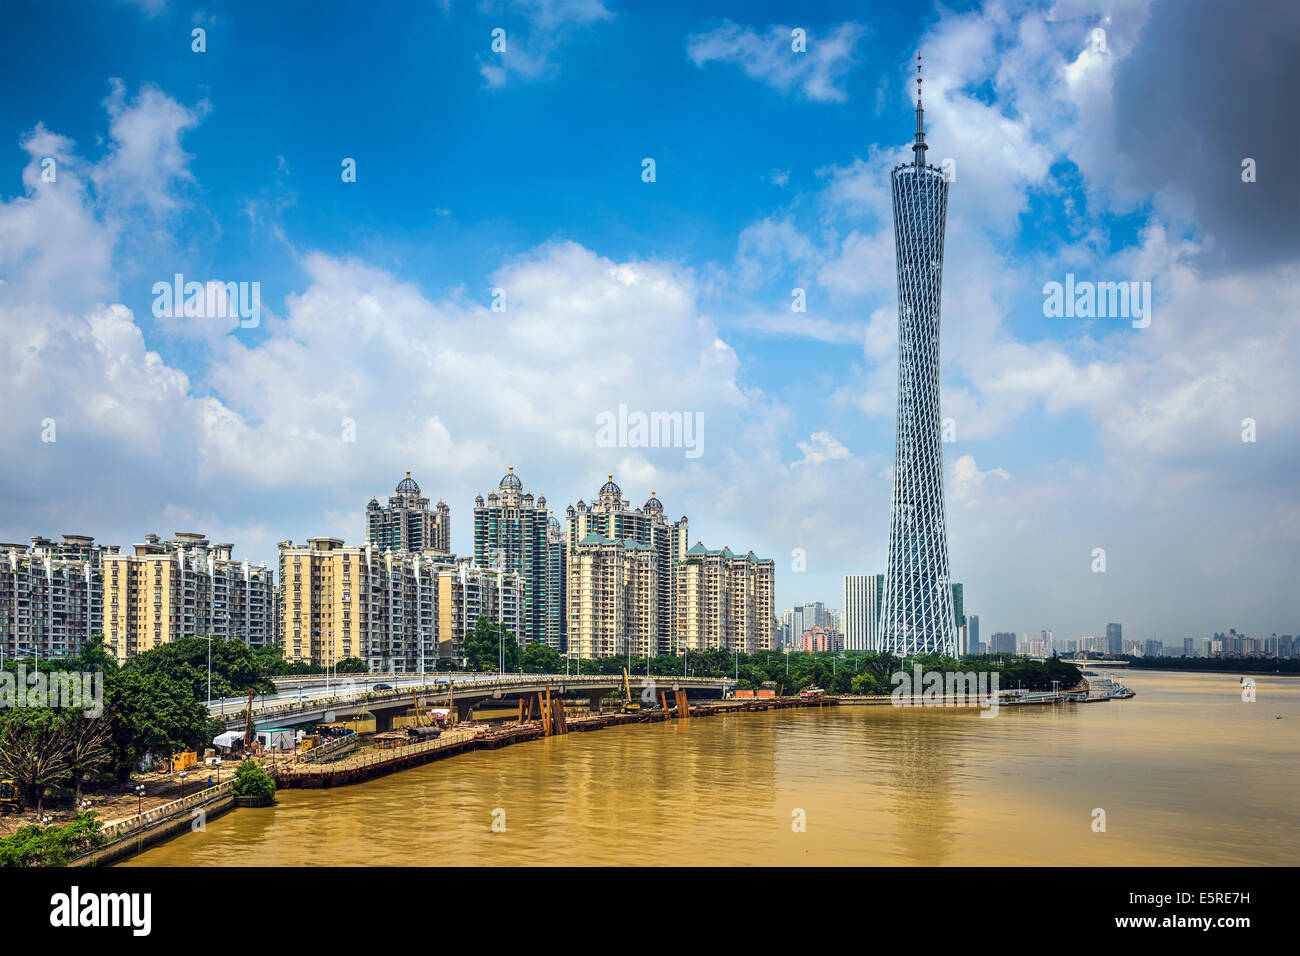 Guangzhou, China city skyline. - Stock Image